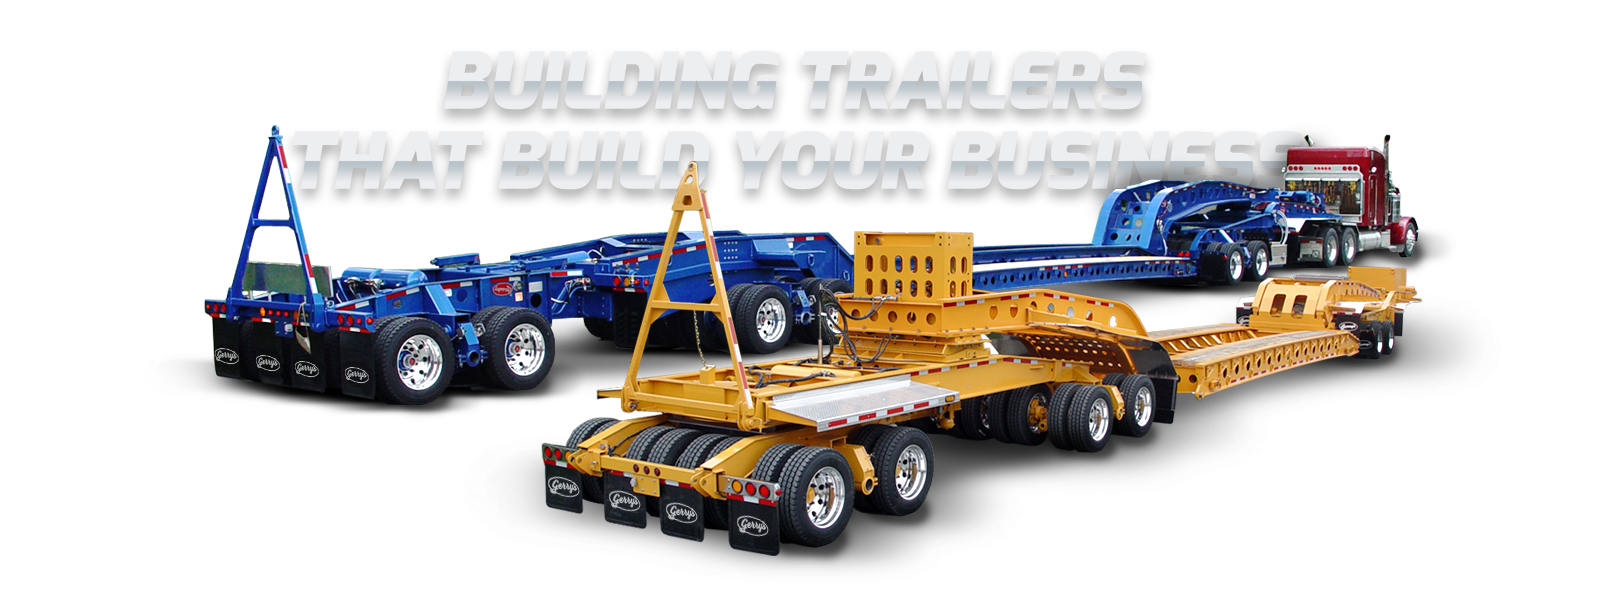 Building trailers that build your business